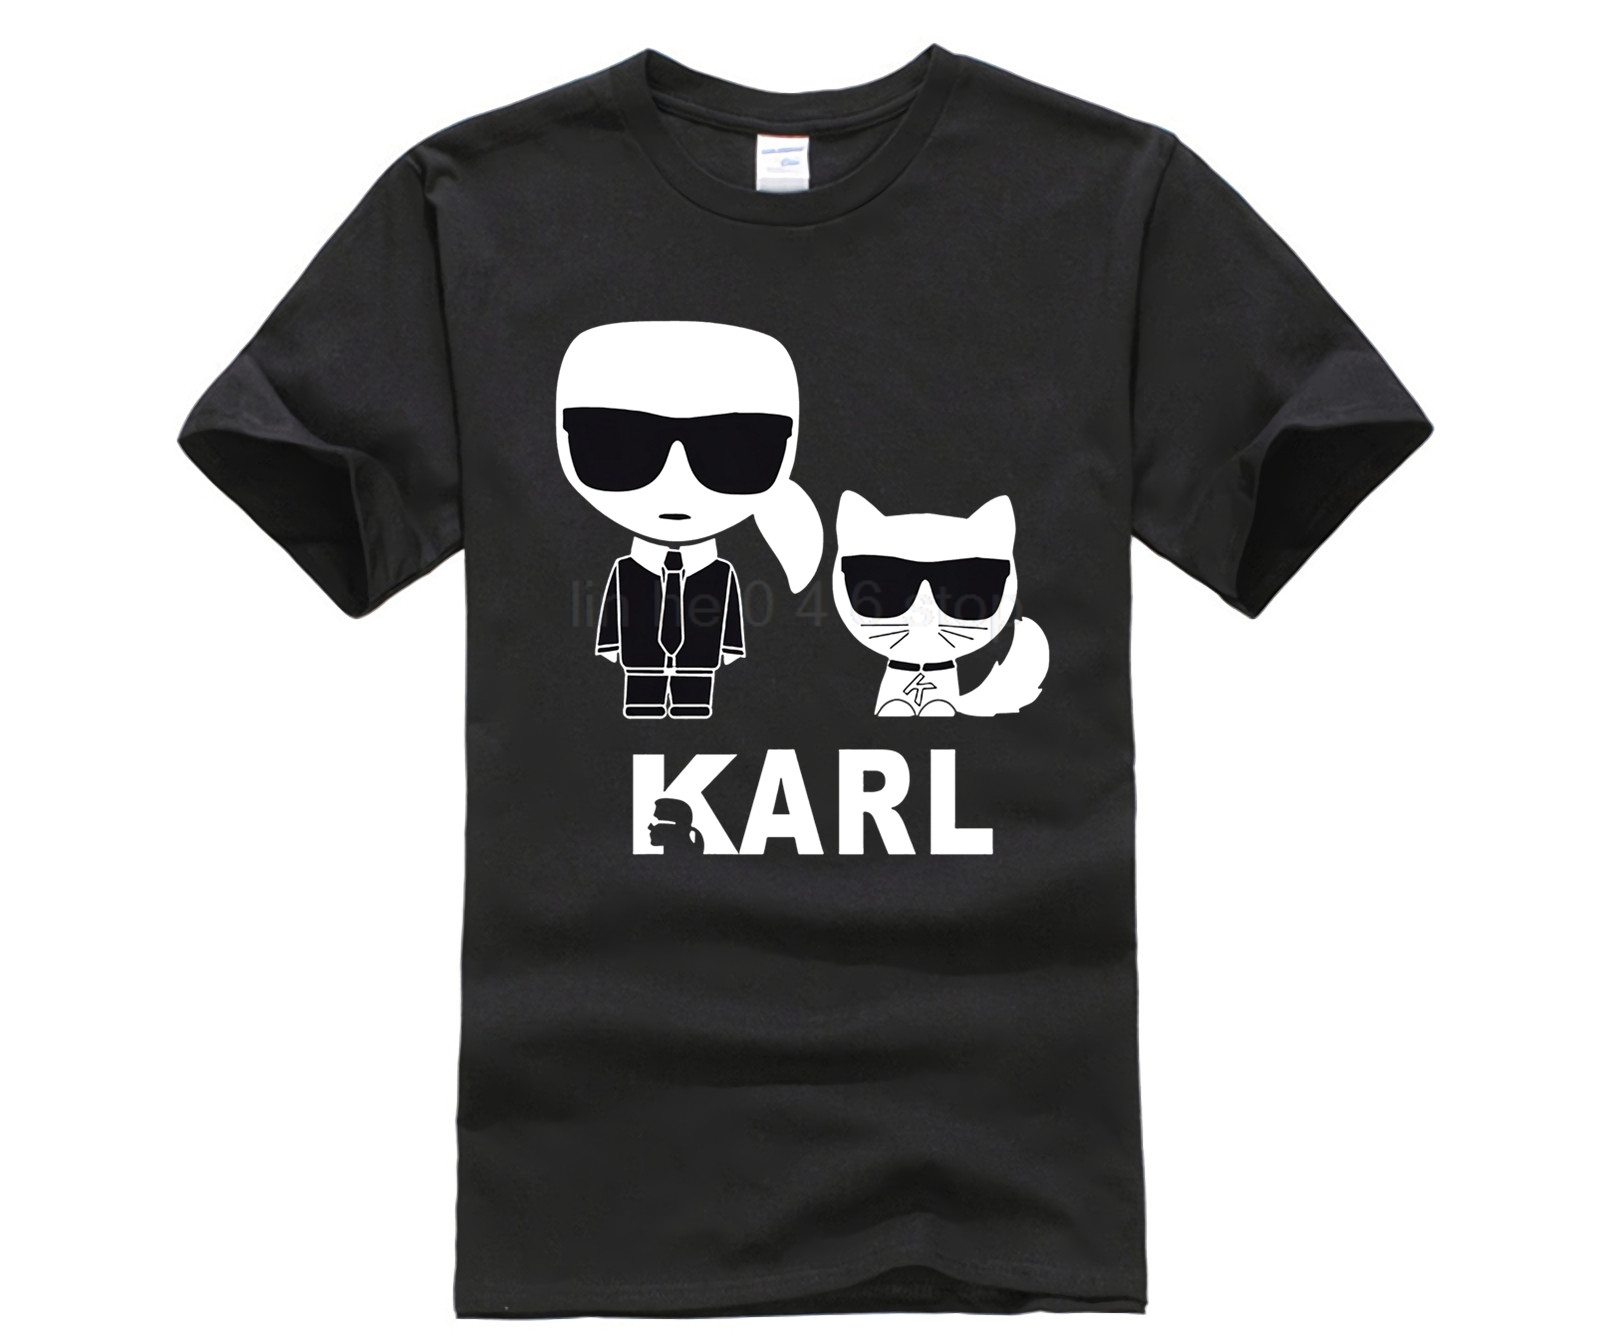 2019 Karl Lagerfeld T Shirt Men Hot Sale Summer Tshirt New Print Karl Lagerfeld T-shirts Men's Fashion